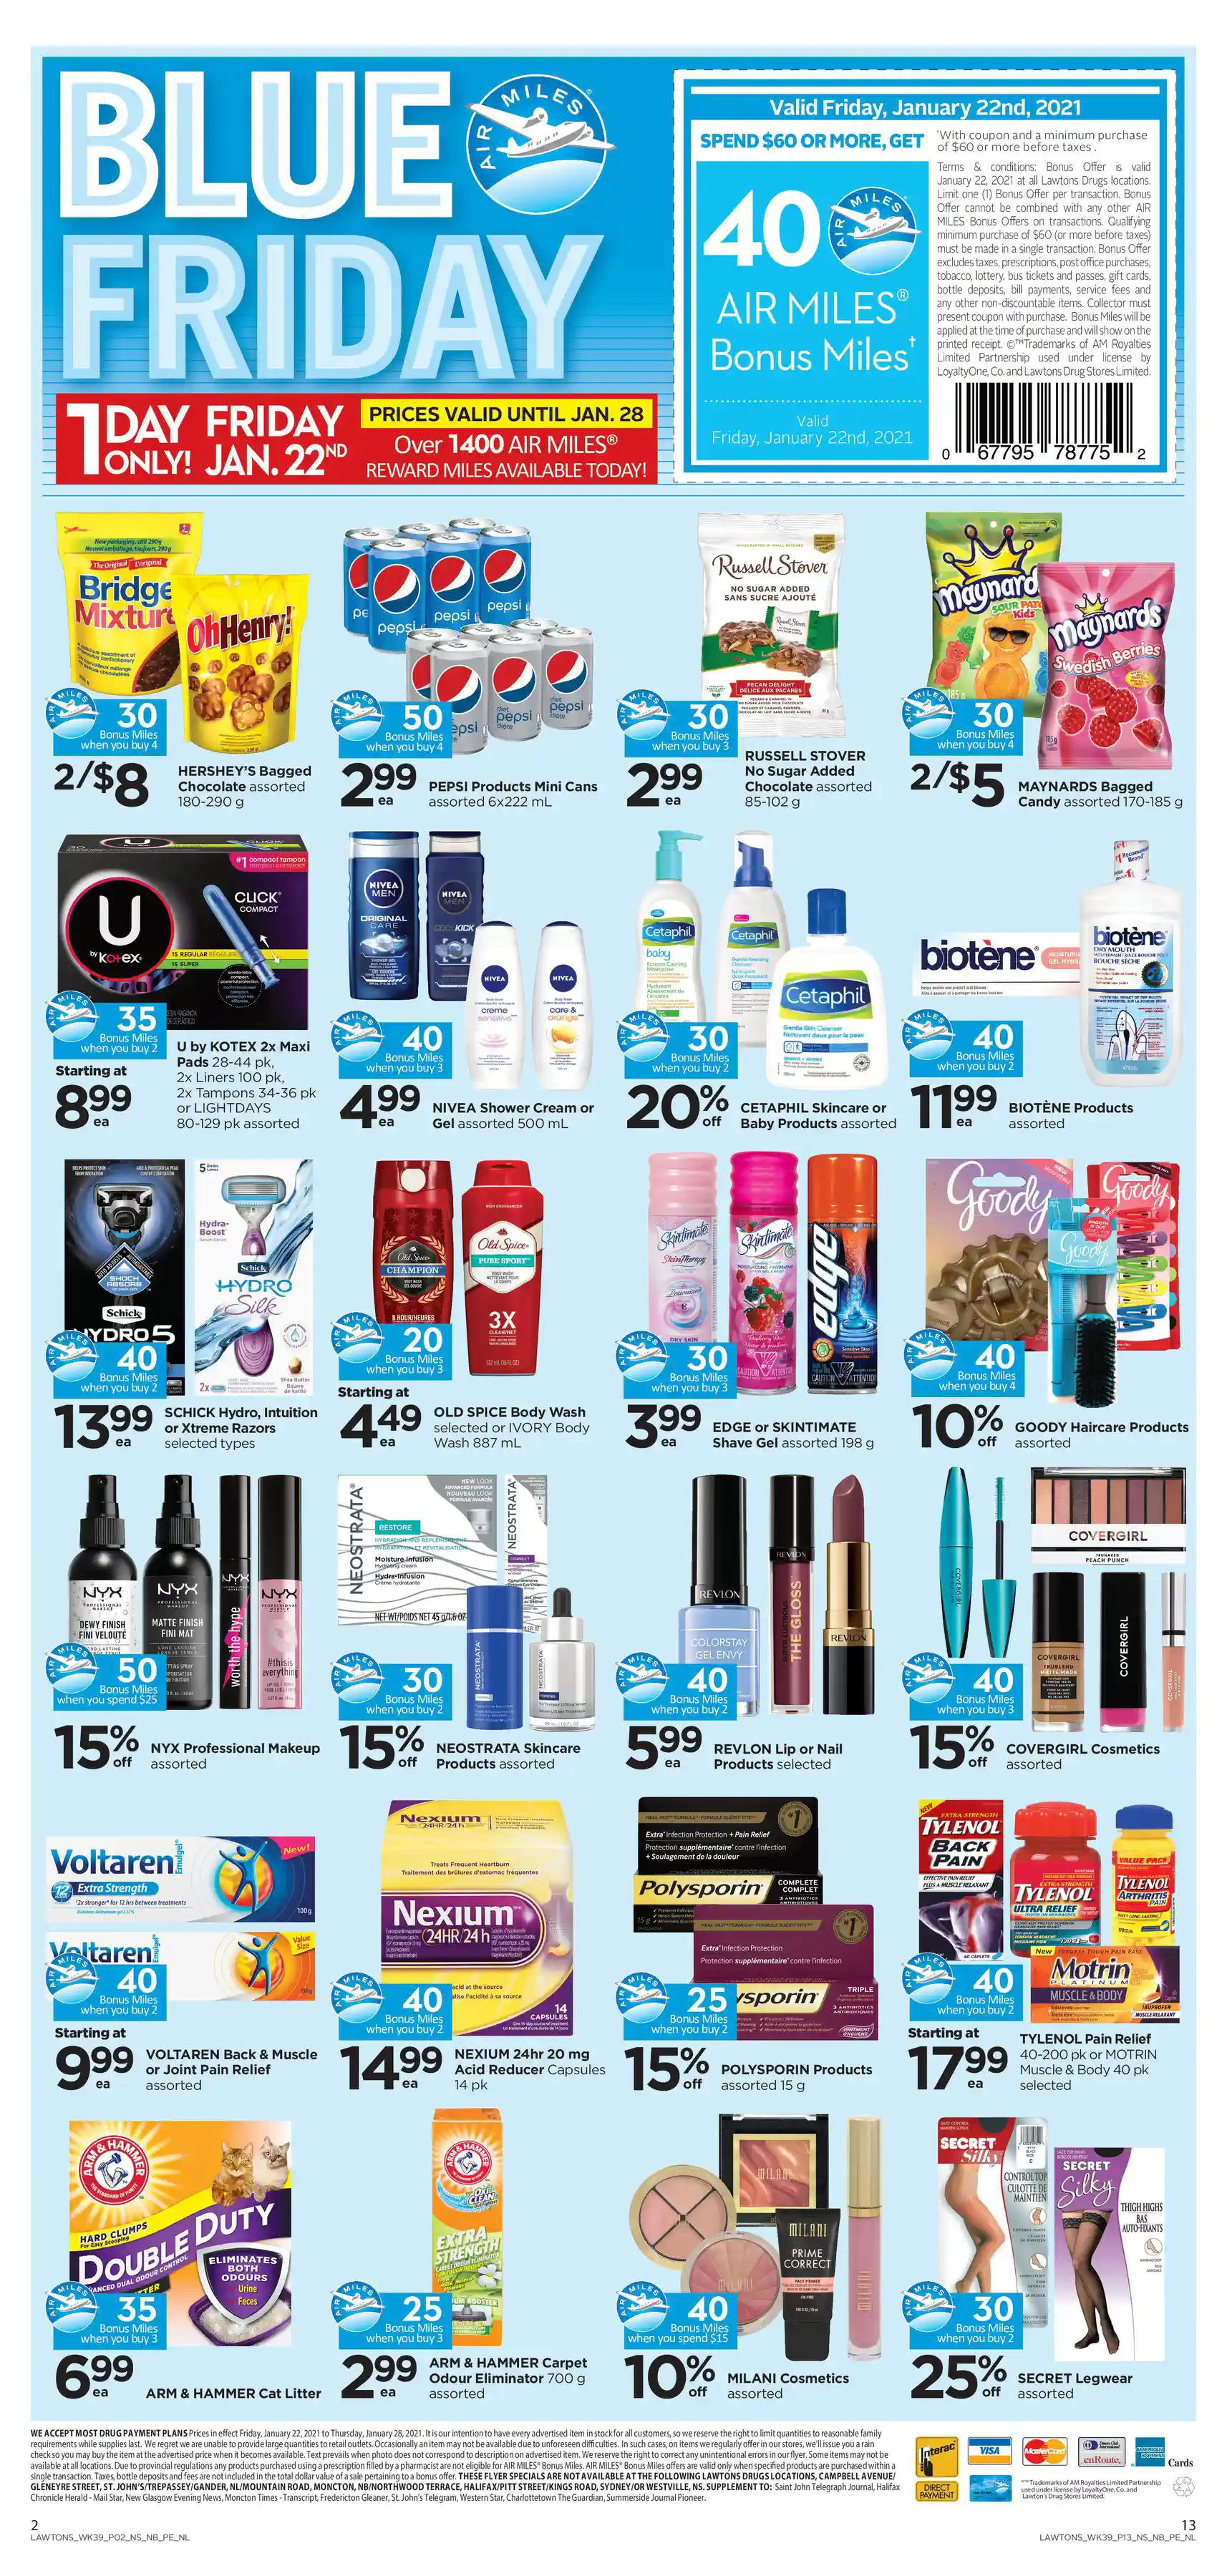 Lawtons Drugs - Weekly Flyer Specials - Page 12